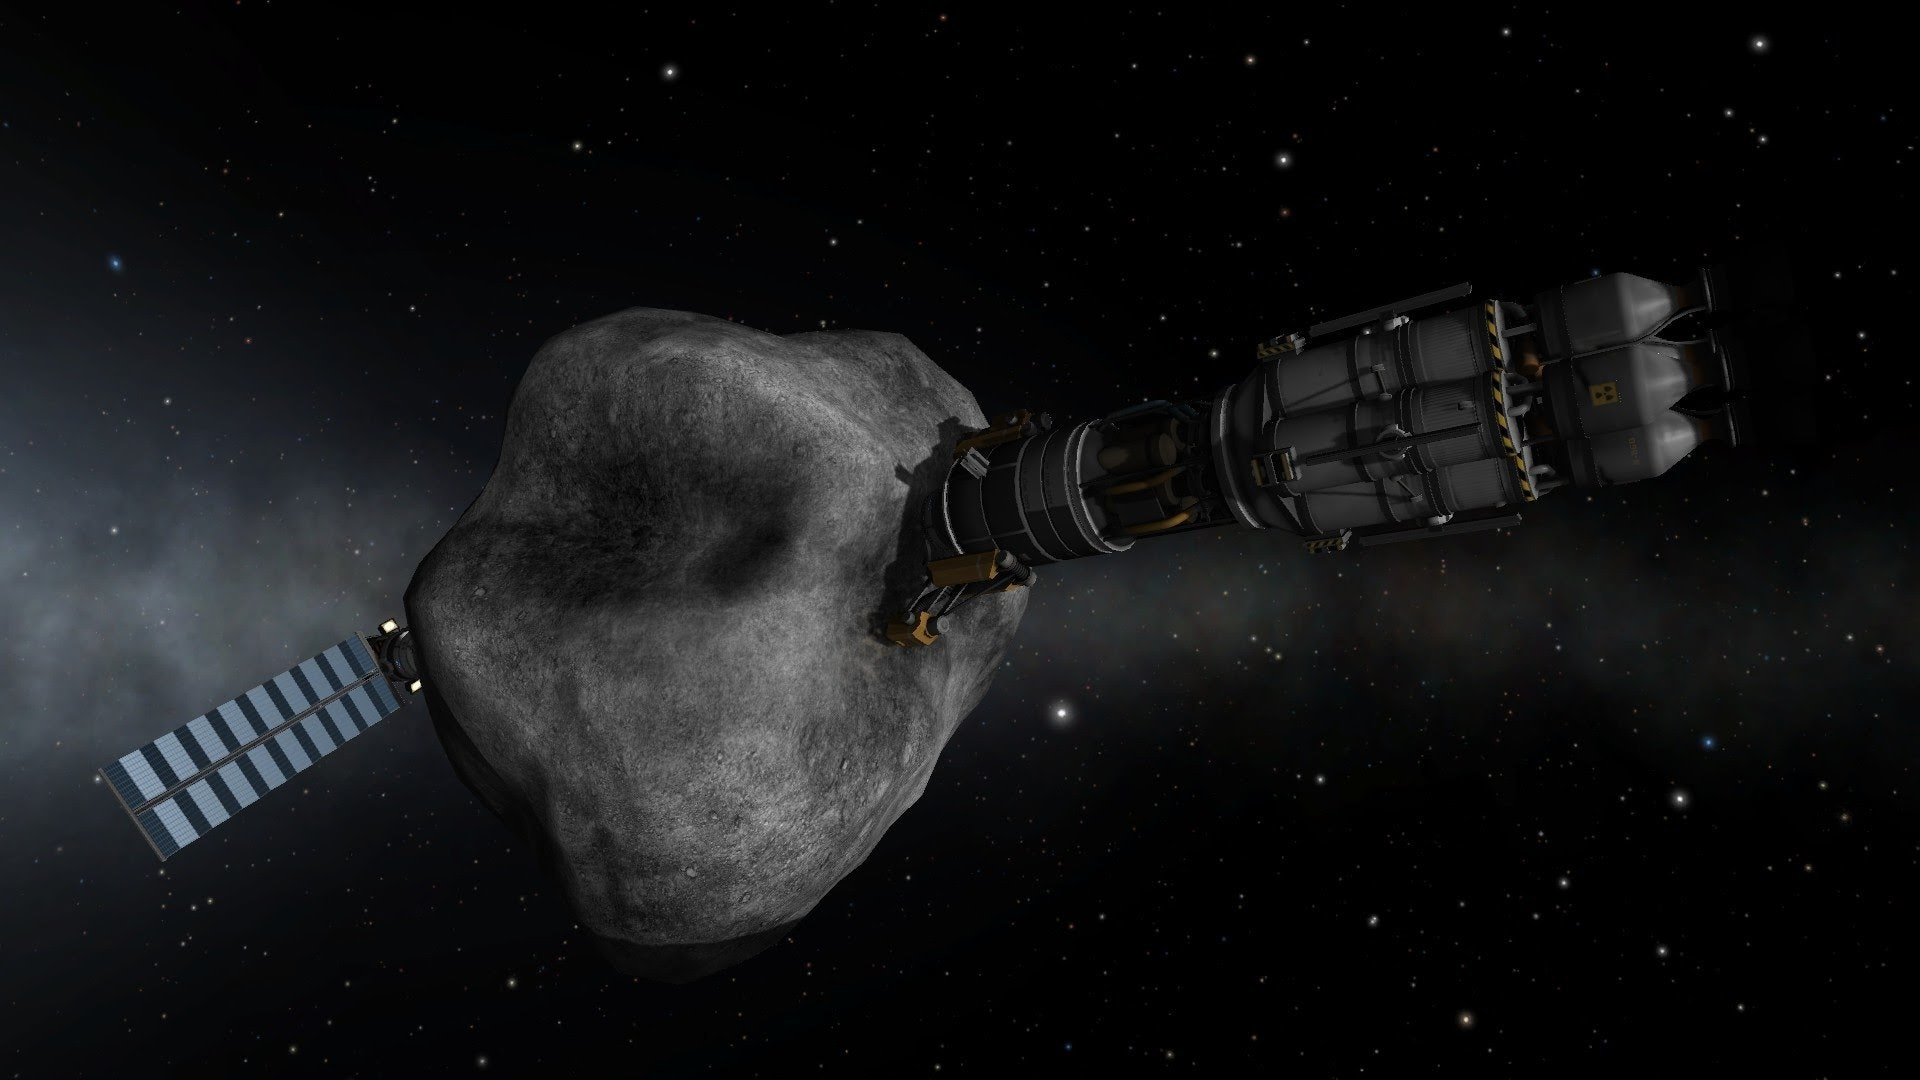 There's a lot of concept art for asteroid mining spacecraft, but none have gotten off the ground yet.